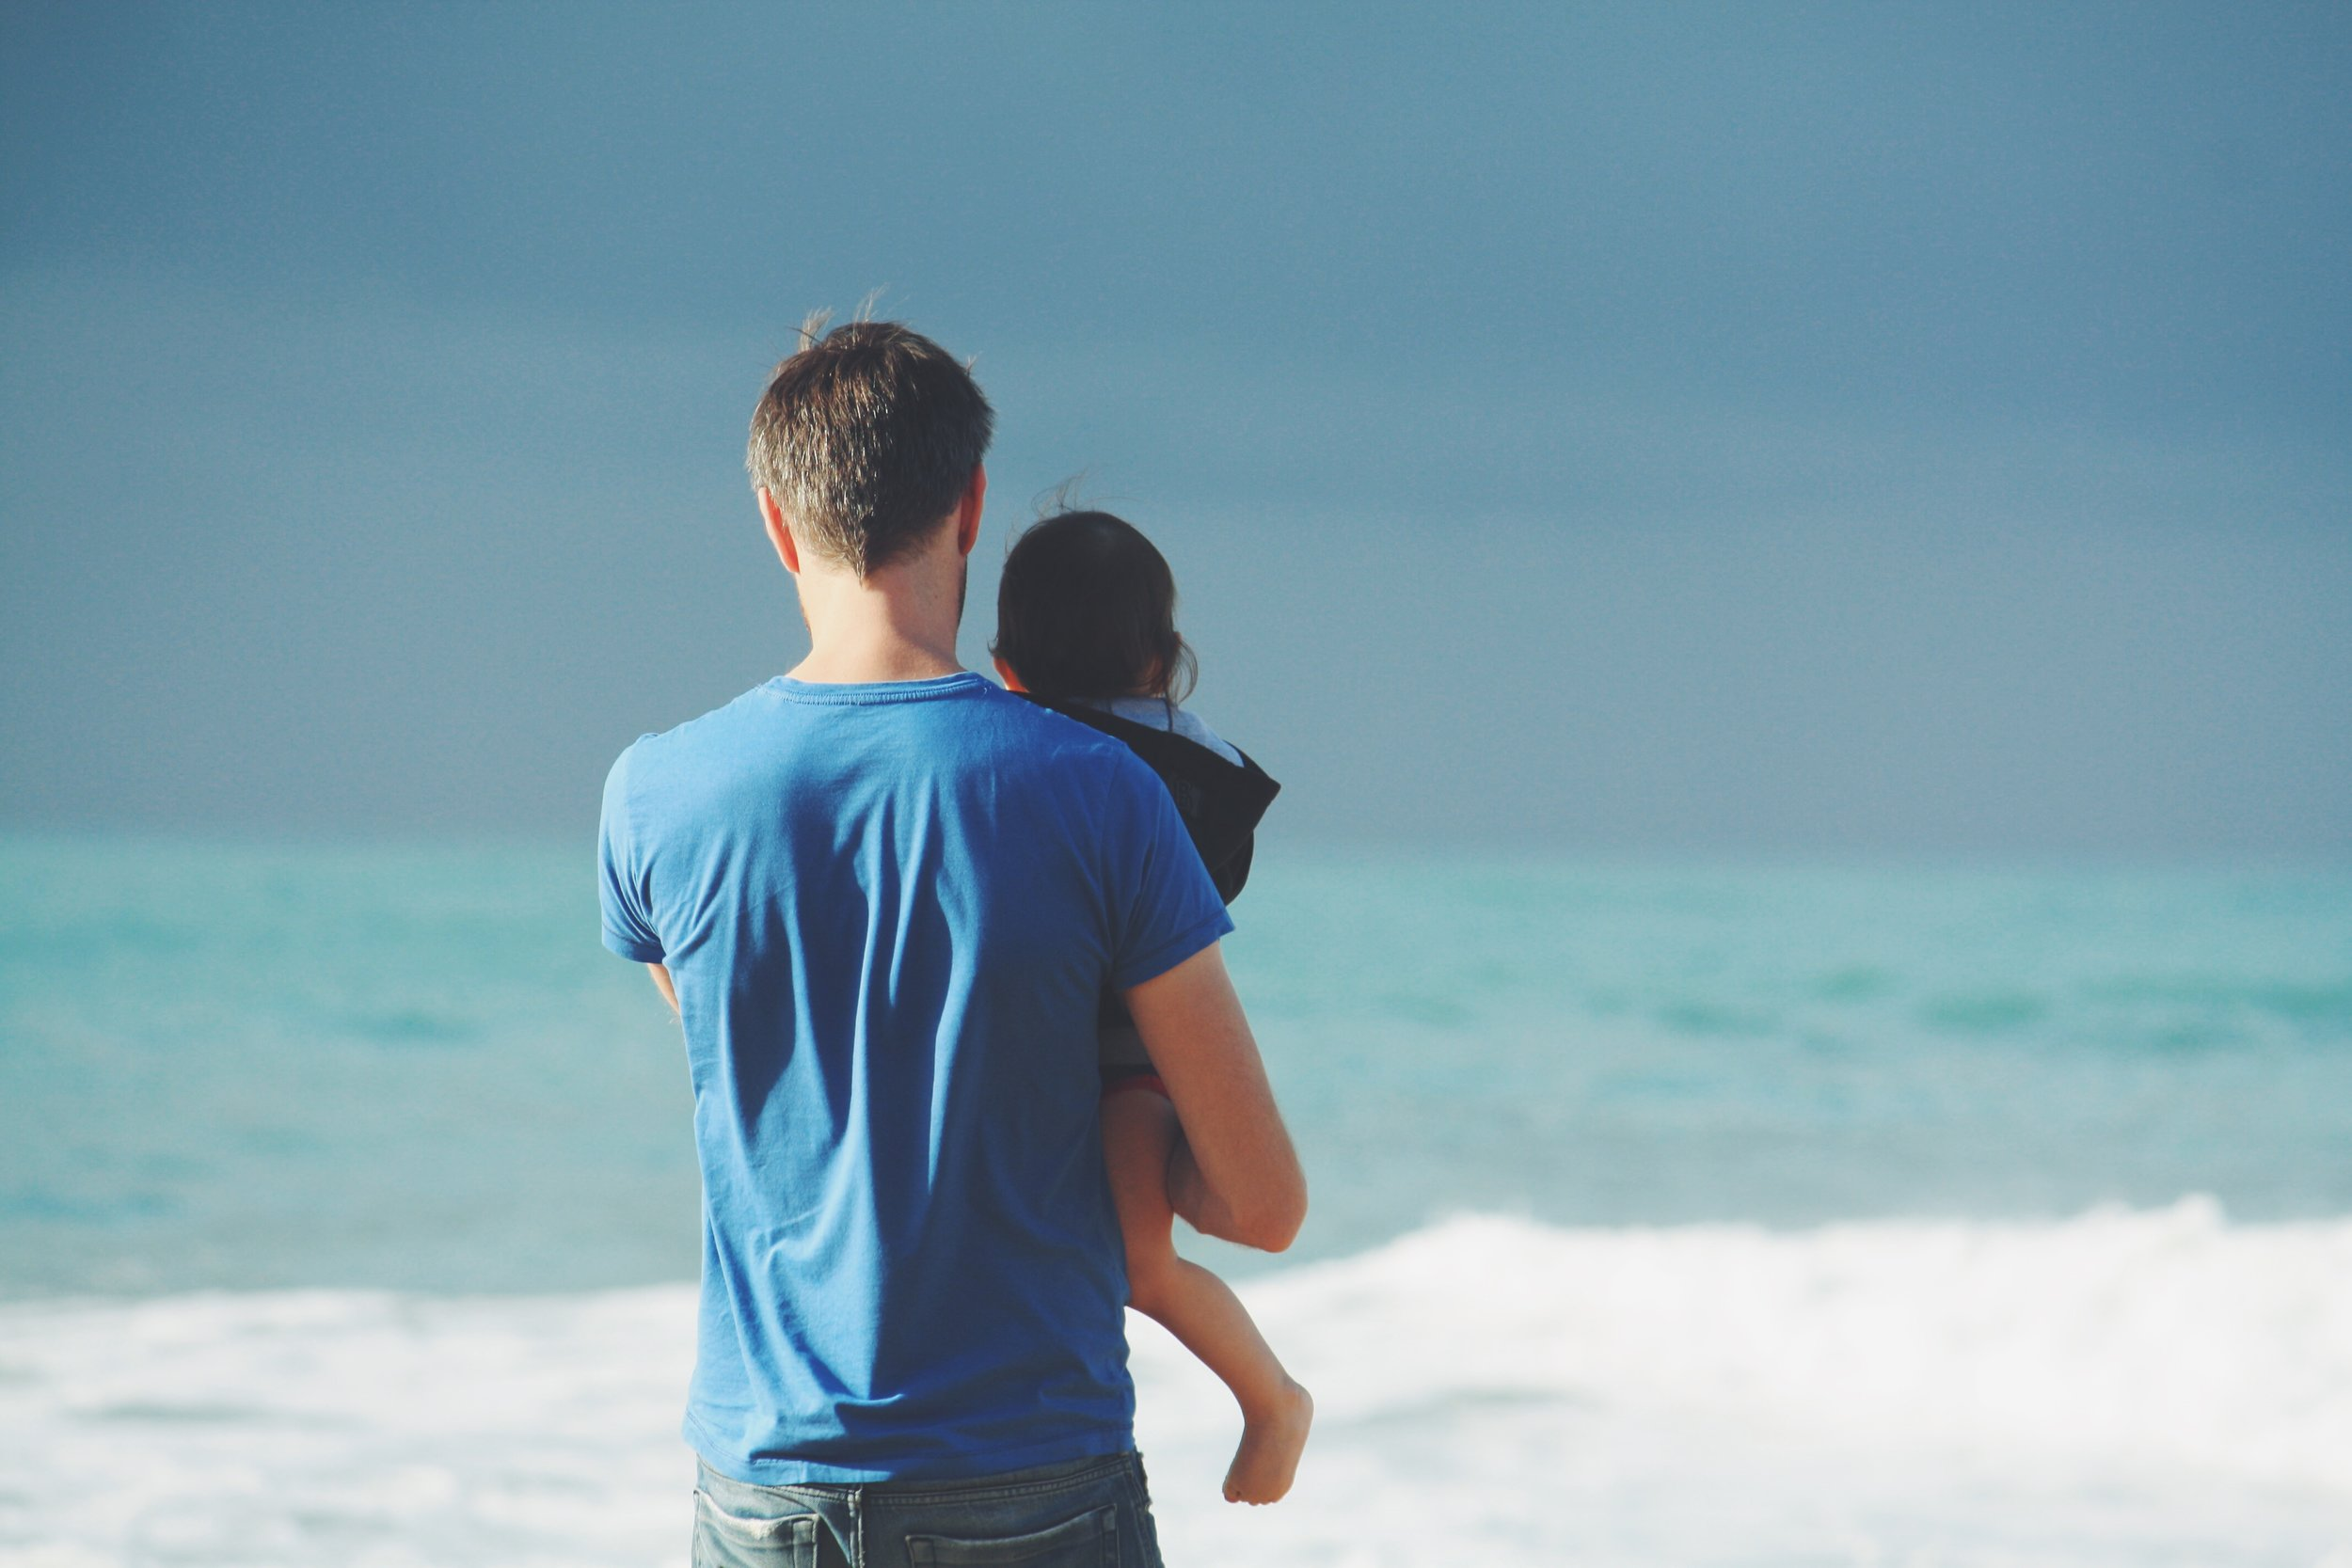 - Overcoming pride is an absolutely essential part of being a dad and a good role model.